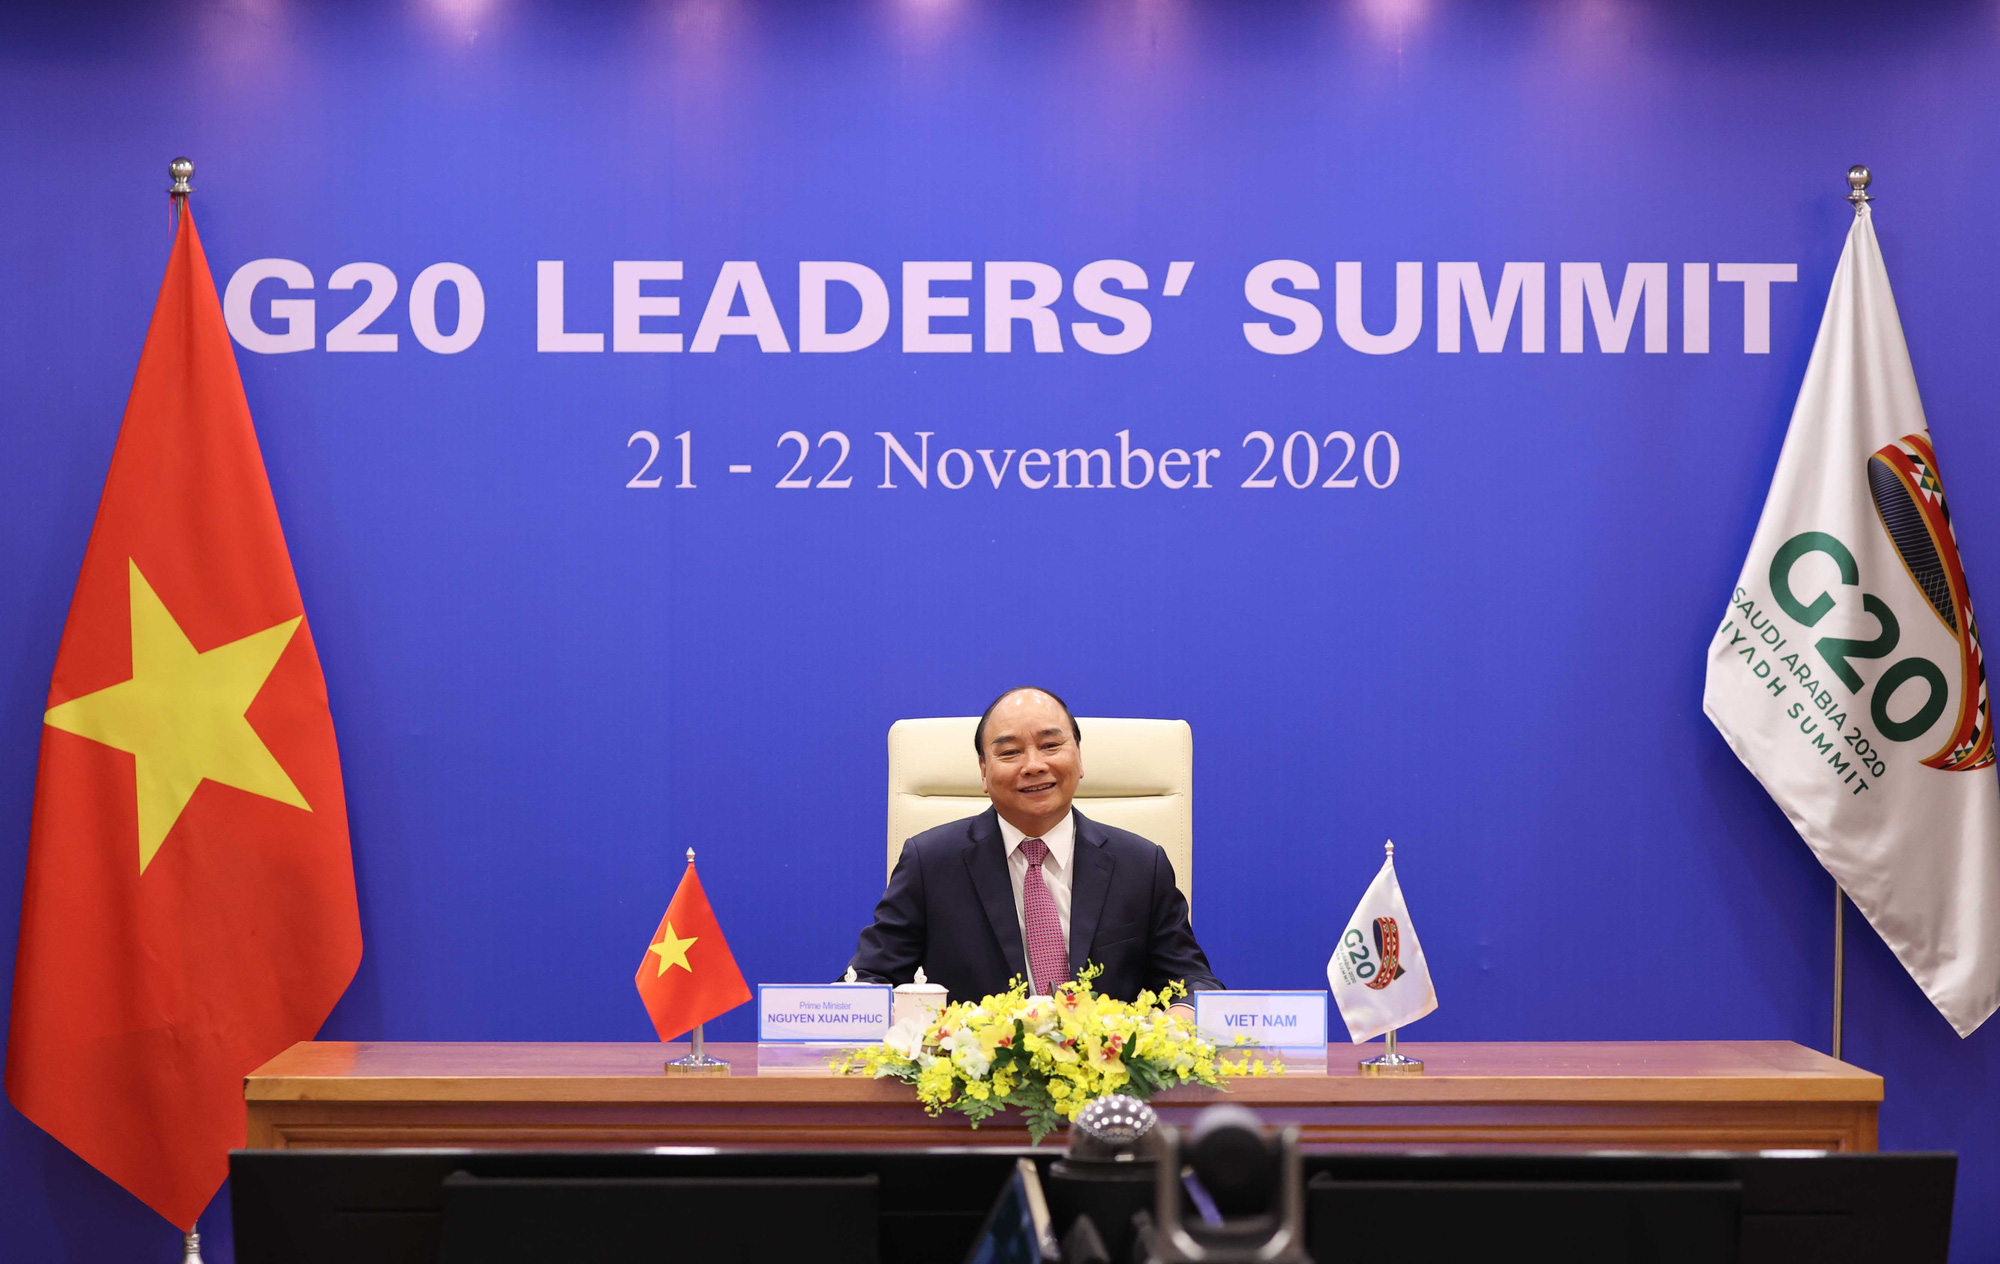 Vietnam premier calls for global solidarity to overcome COVID-19 at G20 Summit